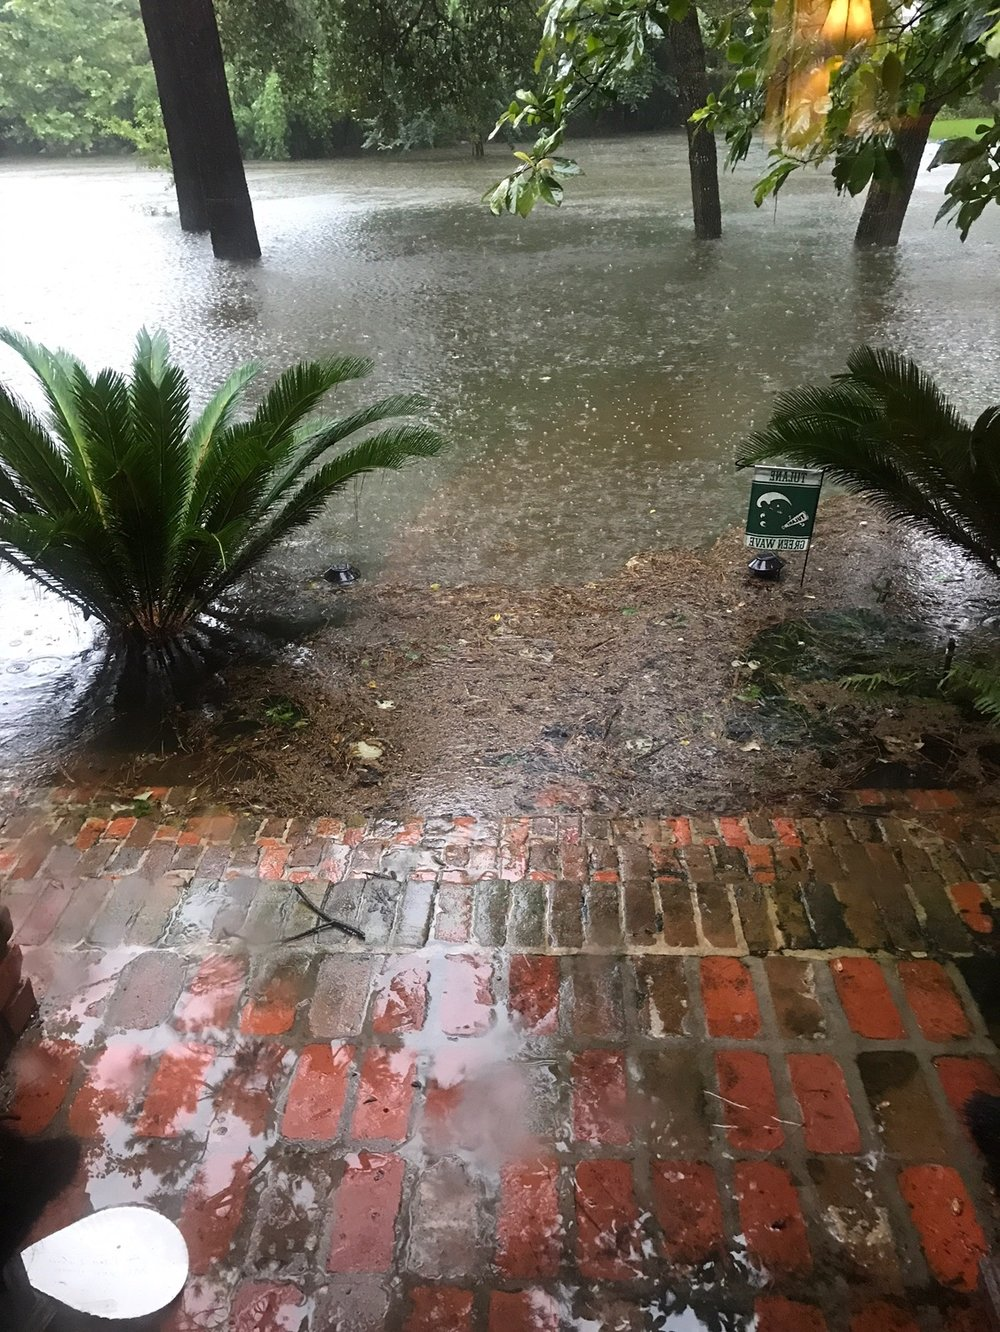 Our Friend's mid-town Houston patio, garden and pool, Aug.27, when the rains came.